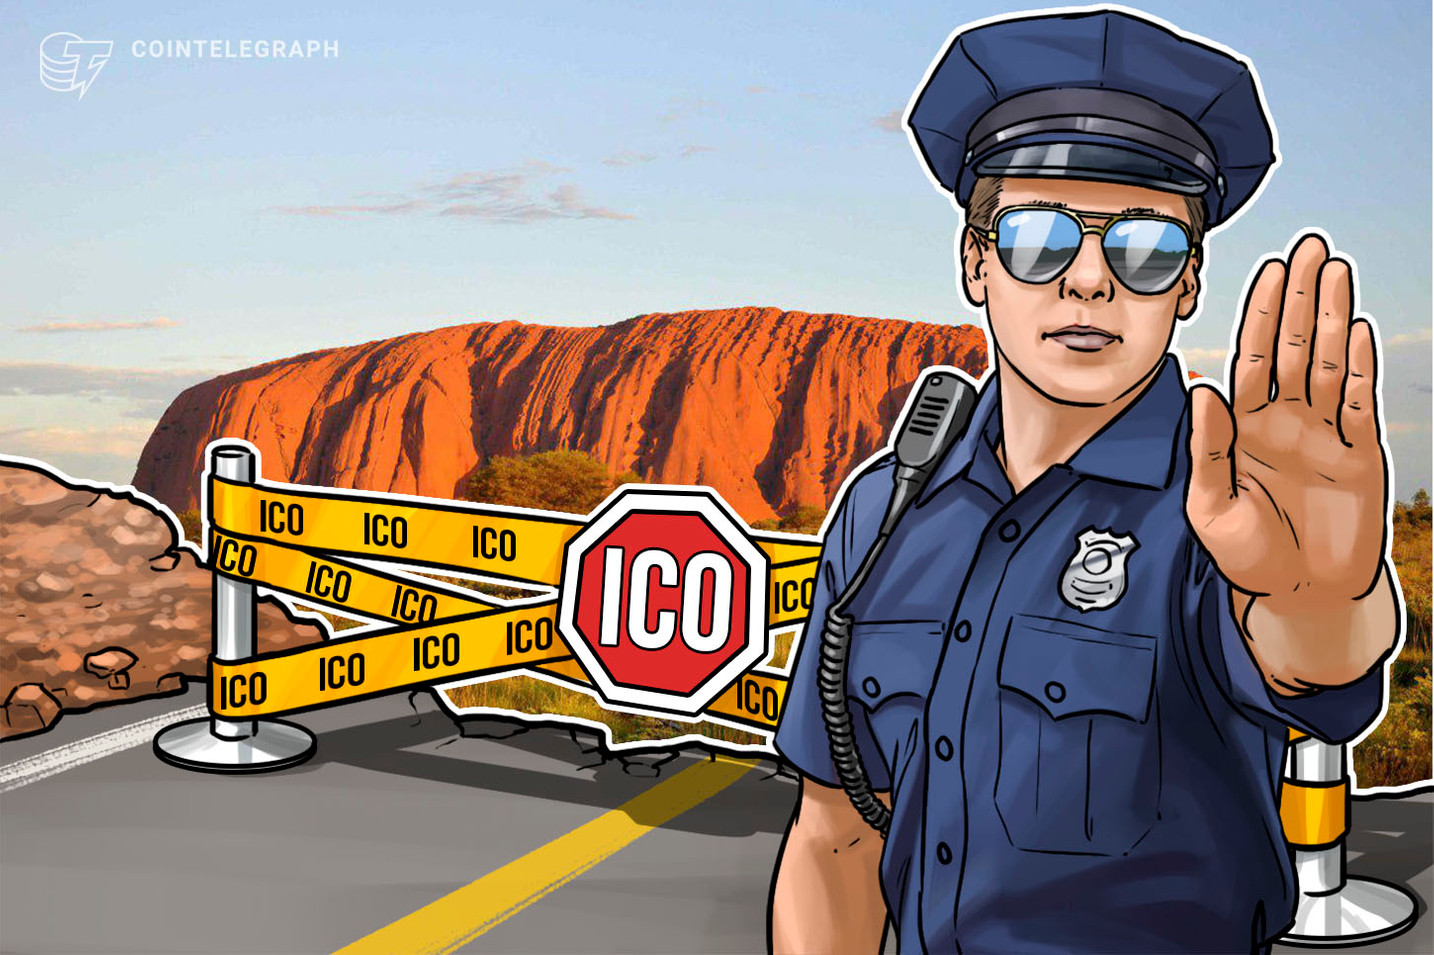 Australia: $50 Million ICO Shuts Down 'in Accordance with' Regulatory Requirements